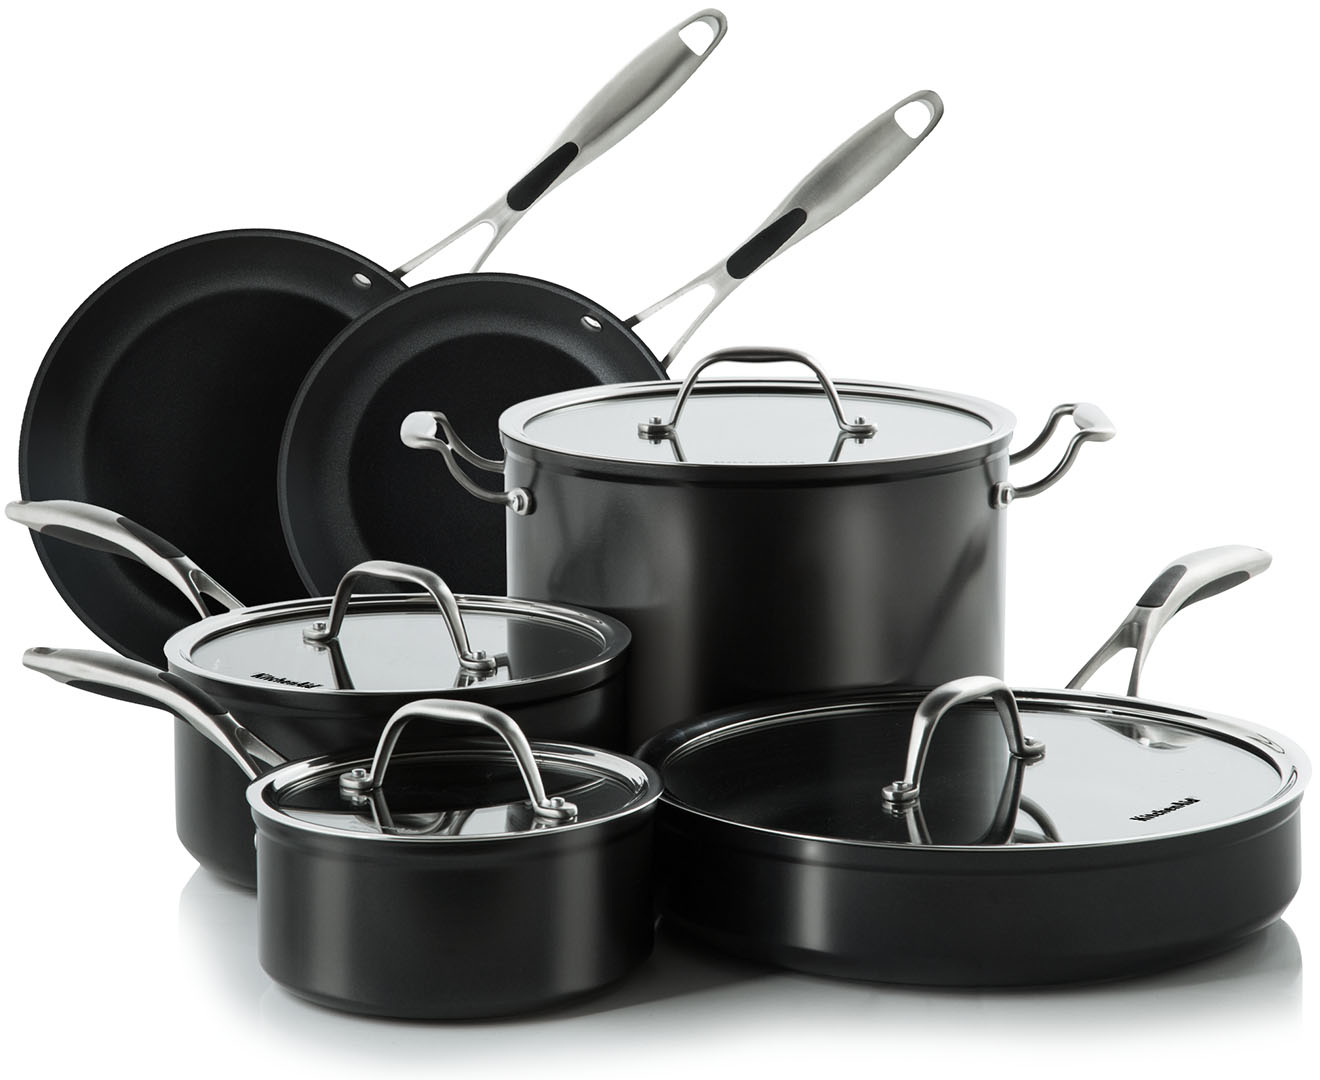 Kitchenaid hard anodized non stick 10 piece cookware set - Kitchen aid pan set ...